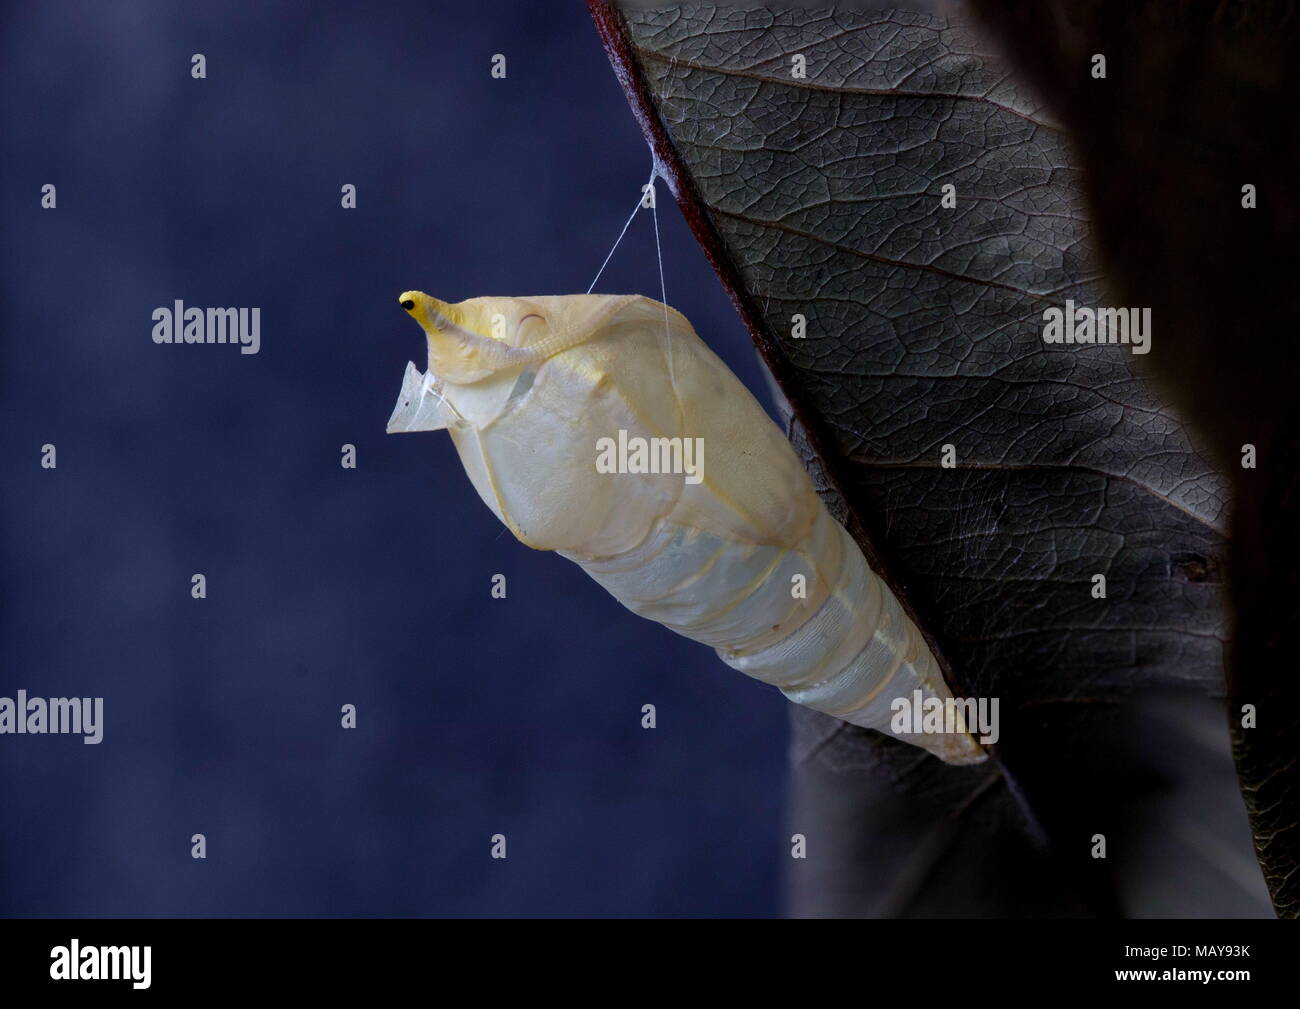 Pupal case of the Common Emigrant or Lemon Emigrant butterfly after eclosion - Stock Image